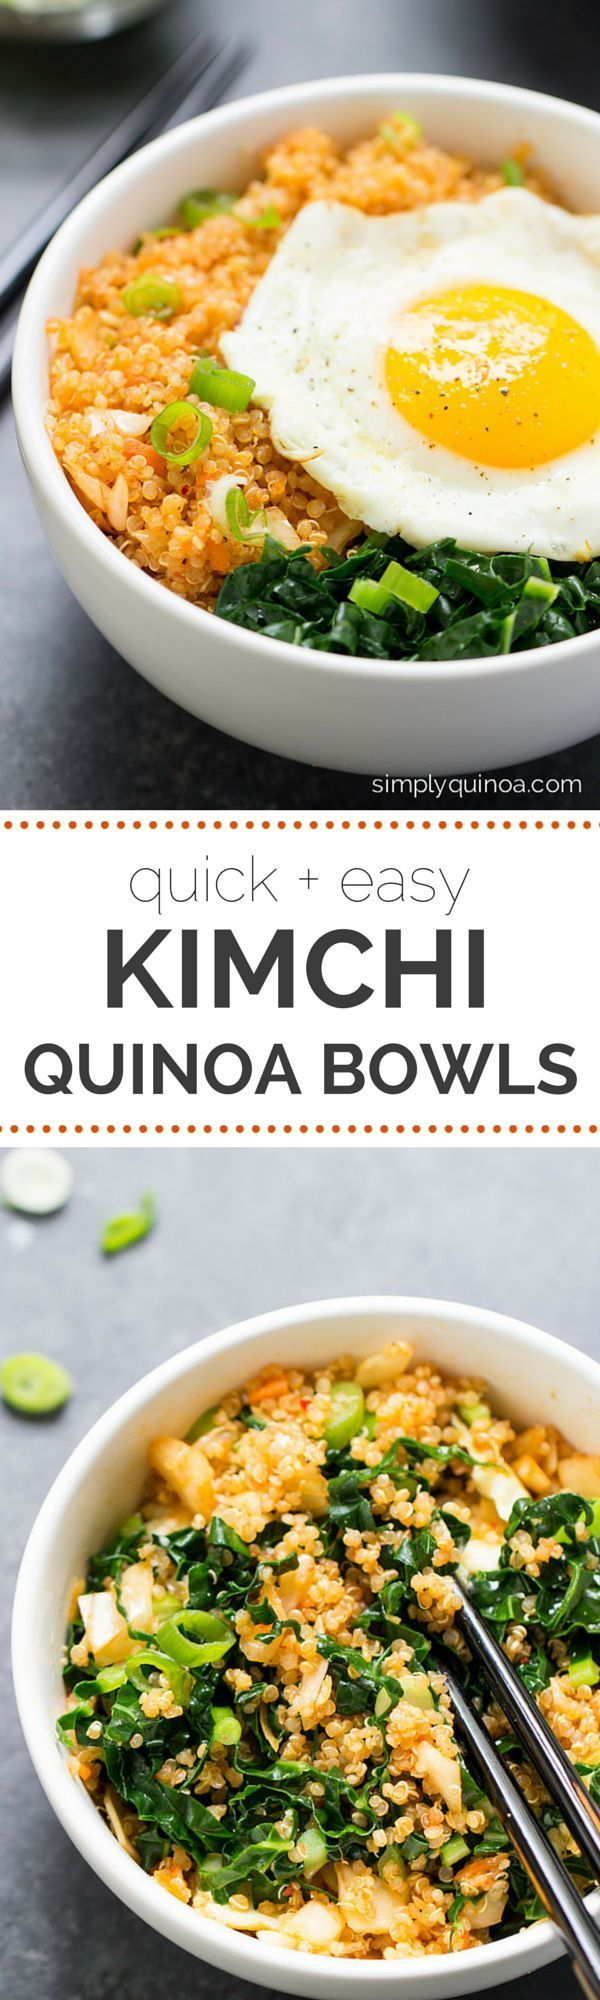 Spicy Kimchi Quinoa Bowls from simplyquinoa.com || an easy lunch or dinner recipe that takes less than 15 minutes to make!